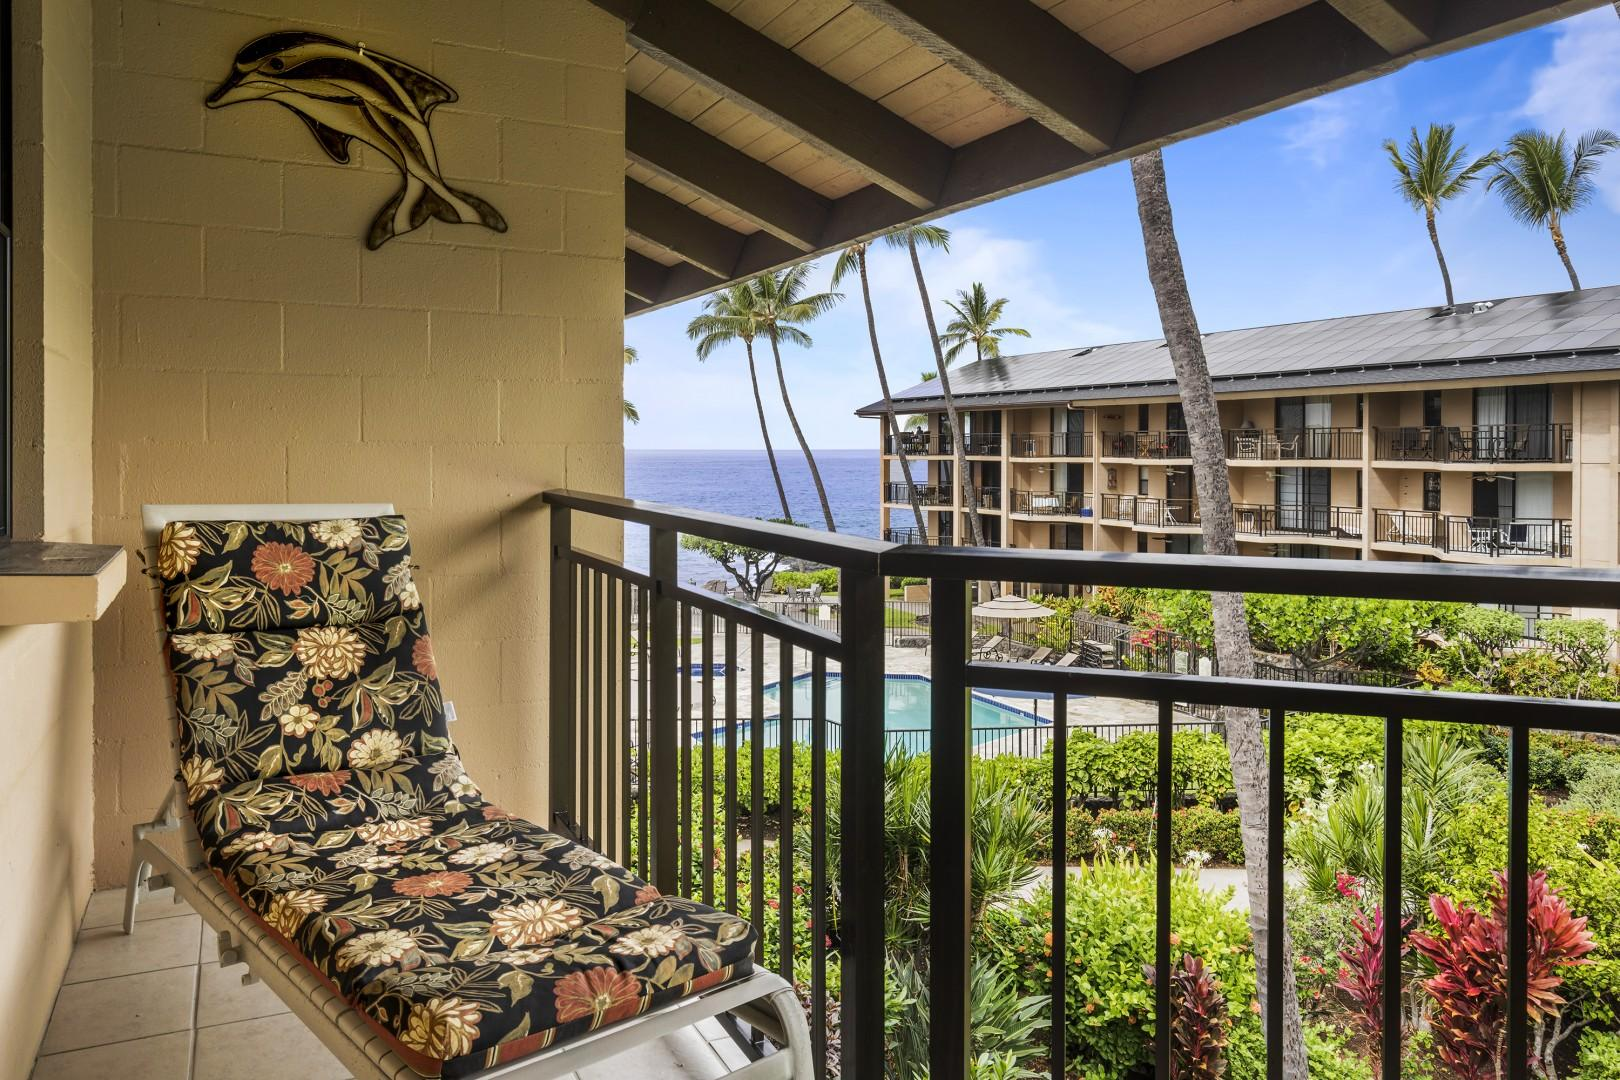 Lounge on the Lanai just steps from the unit